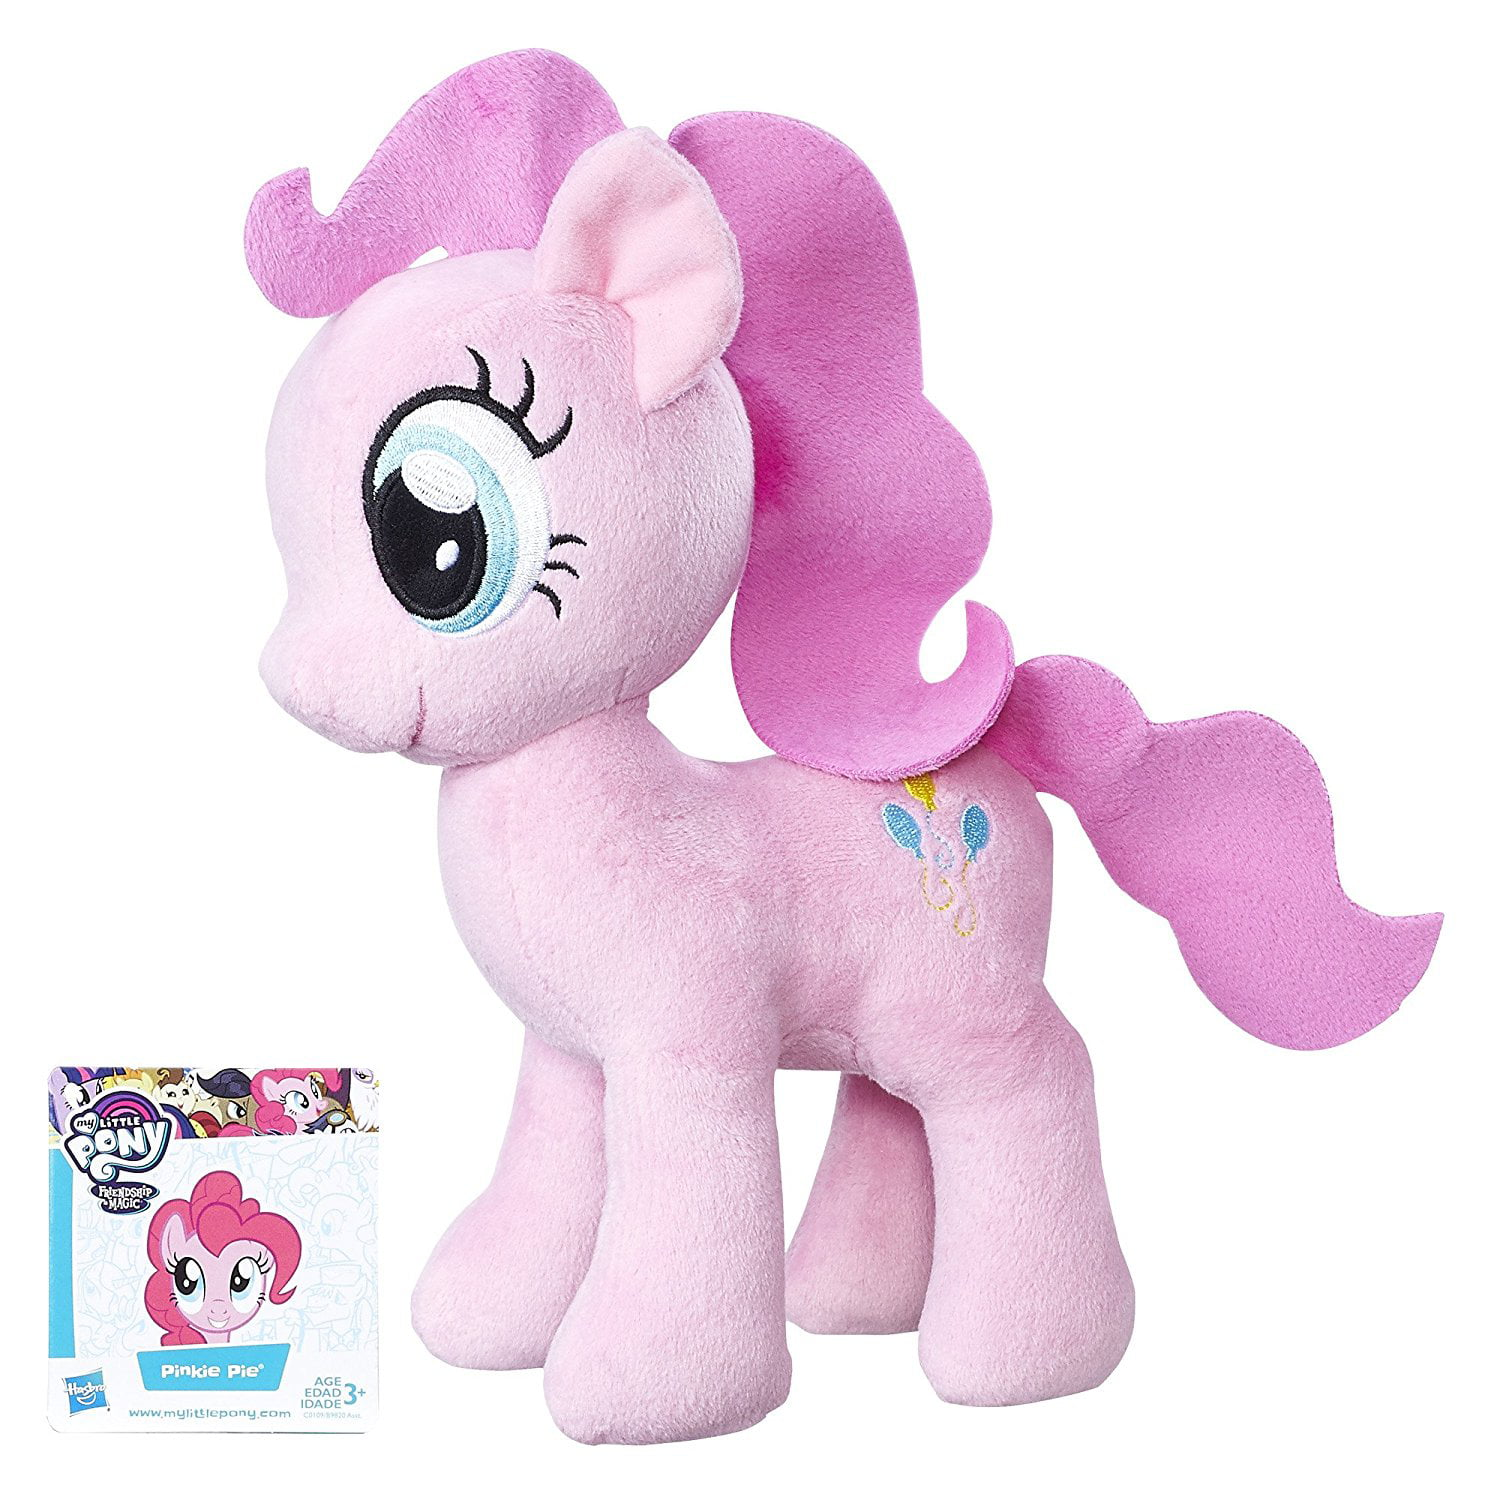 Friendship is Magic Pinkie Pie Soft Plush, Soft and huggable body By My Little Pony by